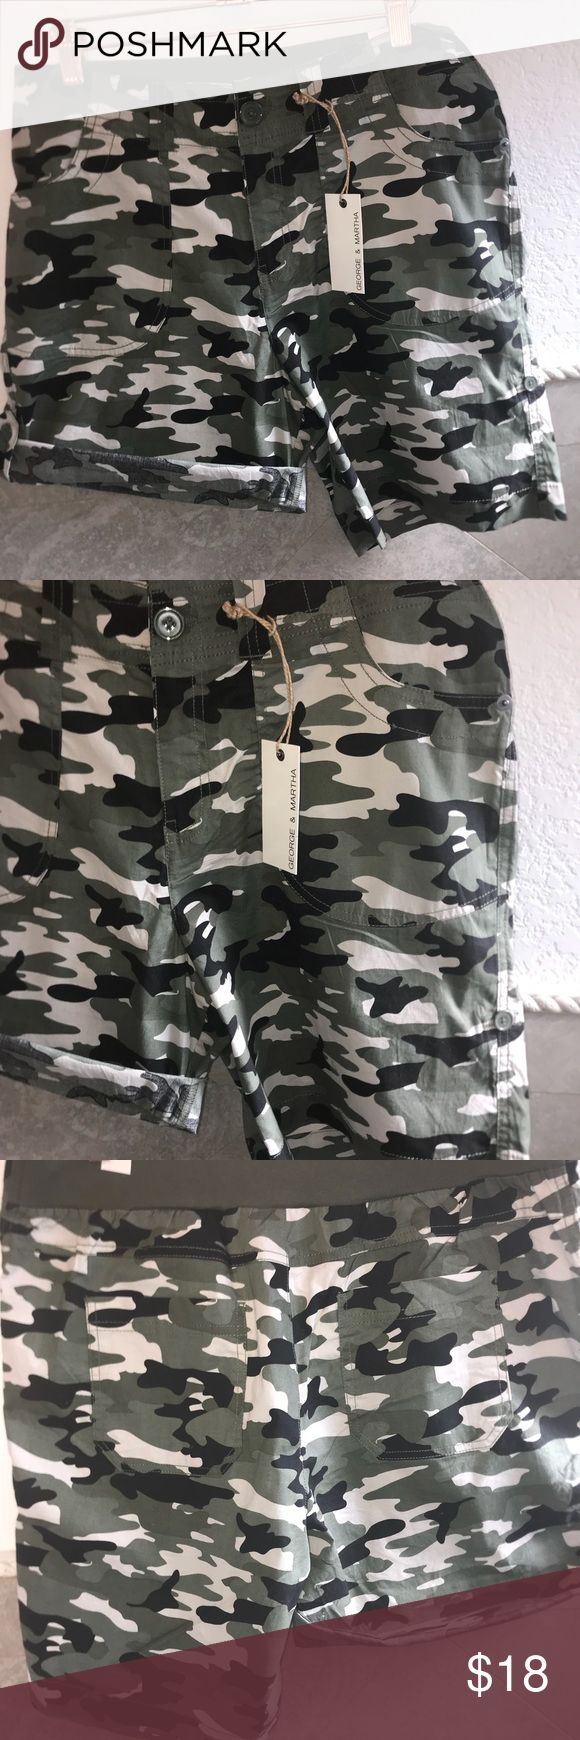 "Comfy camouflage cotton shorts waist 34"" Camouflage shorts with elastic on back pockets all around can be rolled up or down inseam 8"" rolled up 5"" George & Martha Shorts"